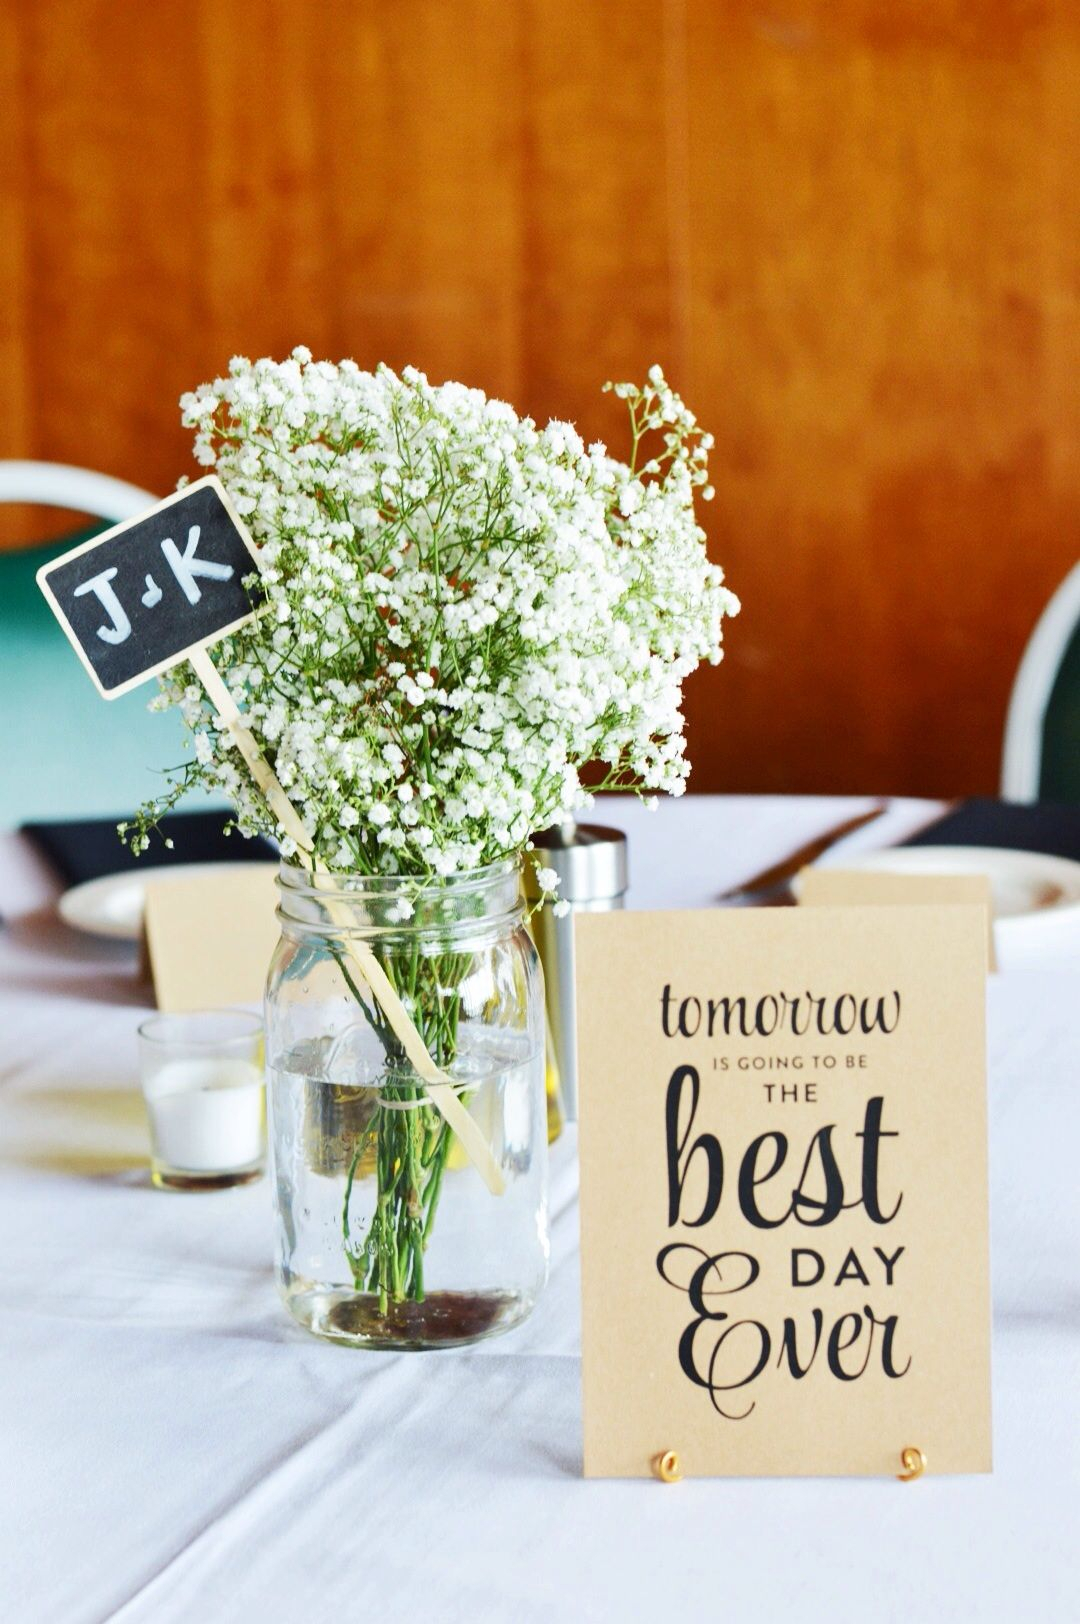 10 Awesome Rehearsal Dinner Table Decorations Ideas rehearsal dinner decor barn wedding rehearsal dinner decorations 2020